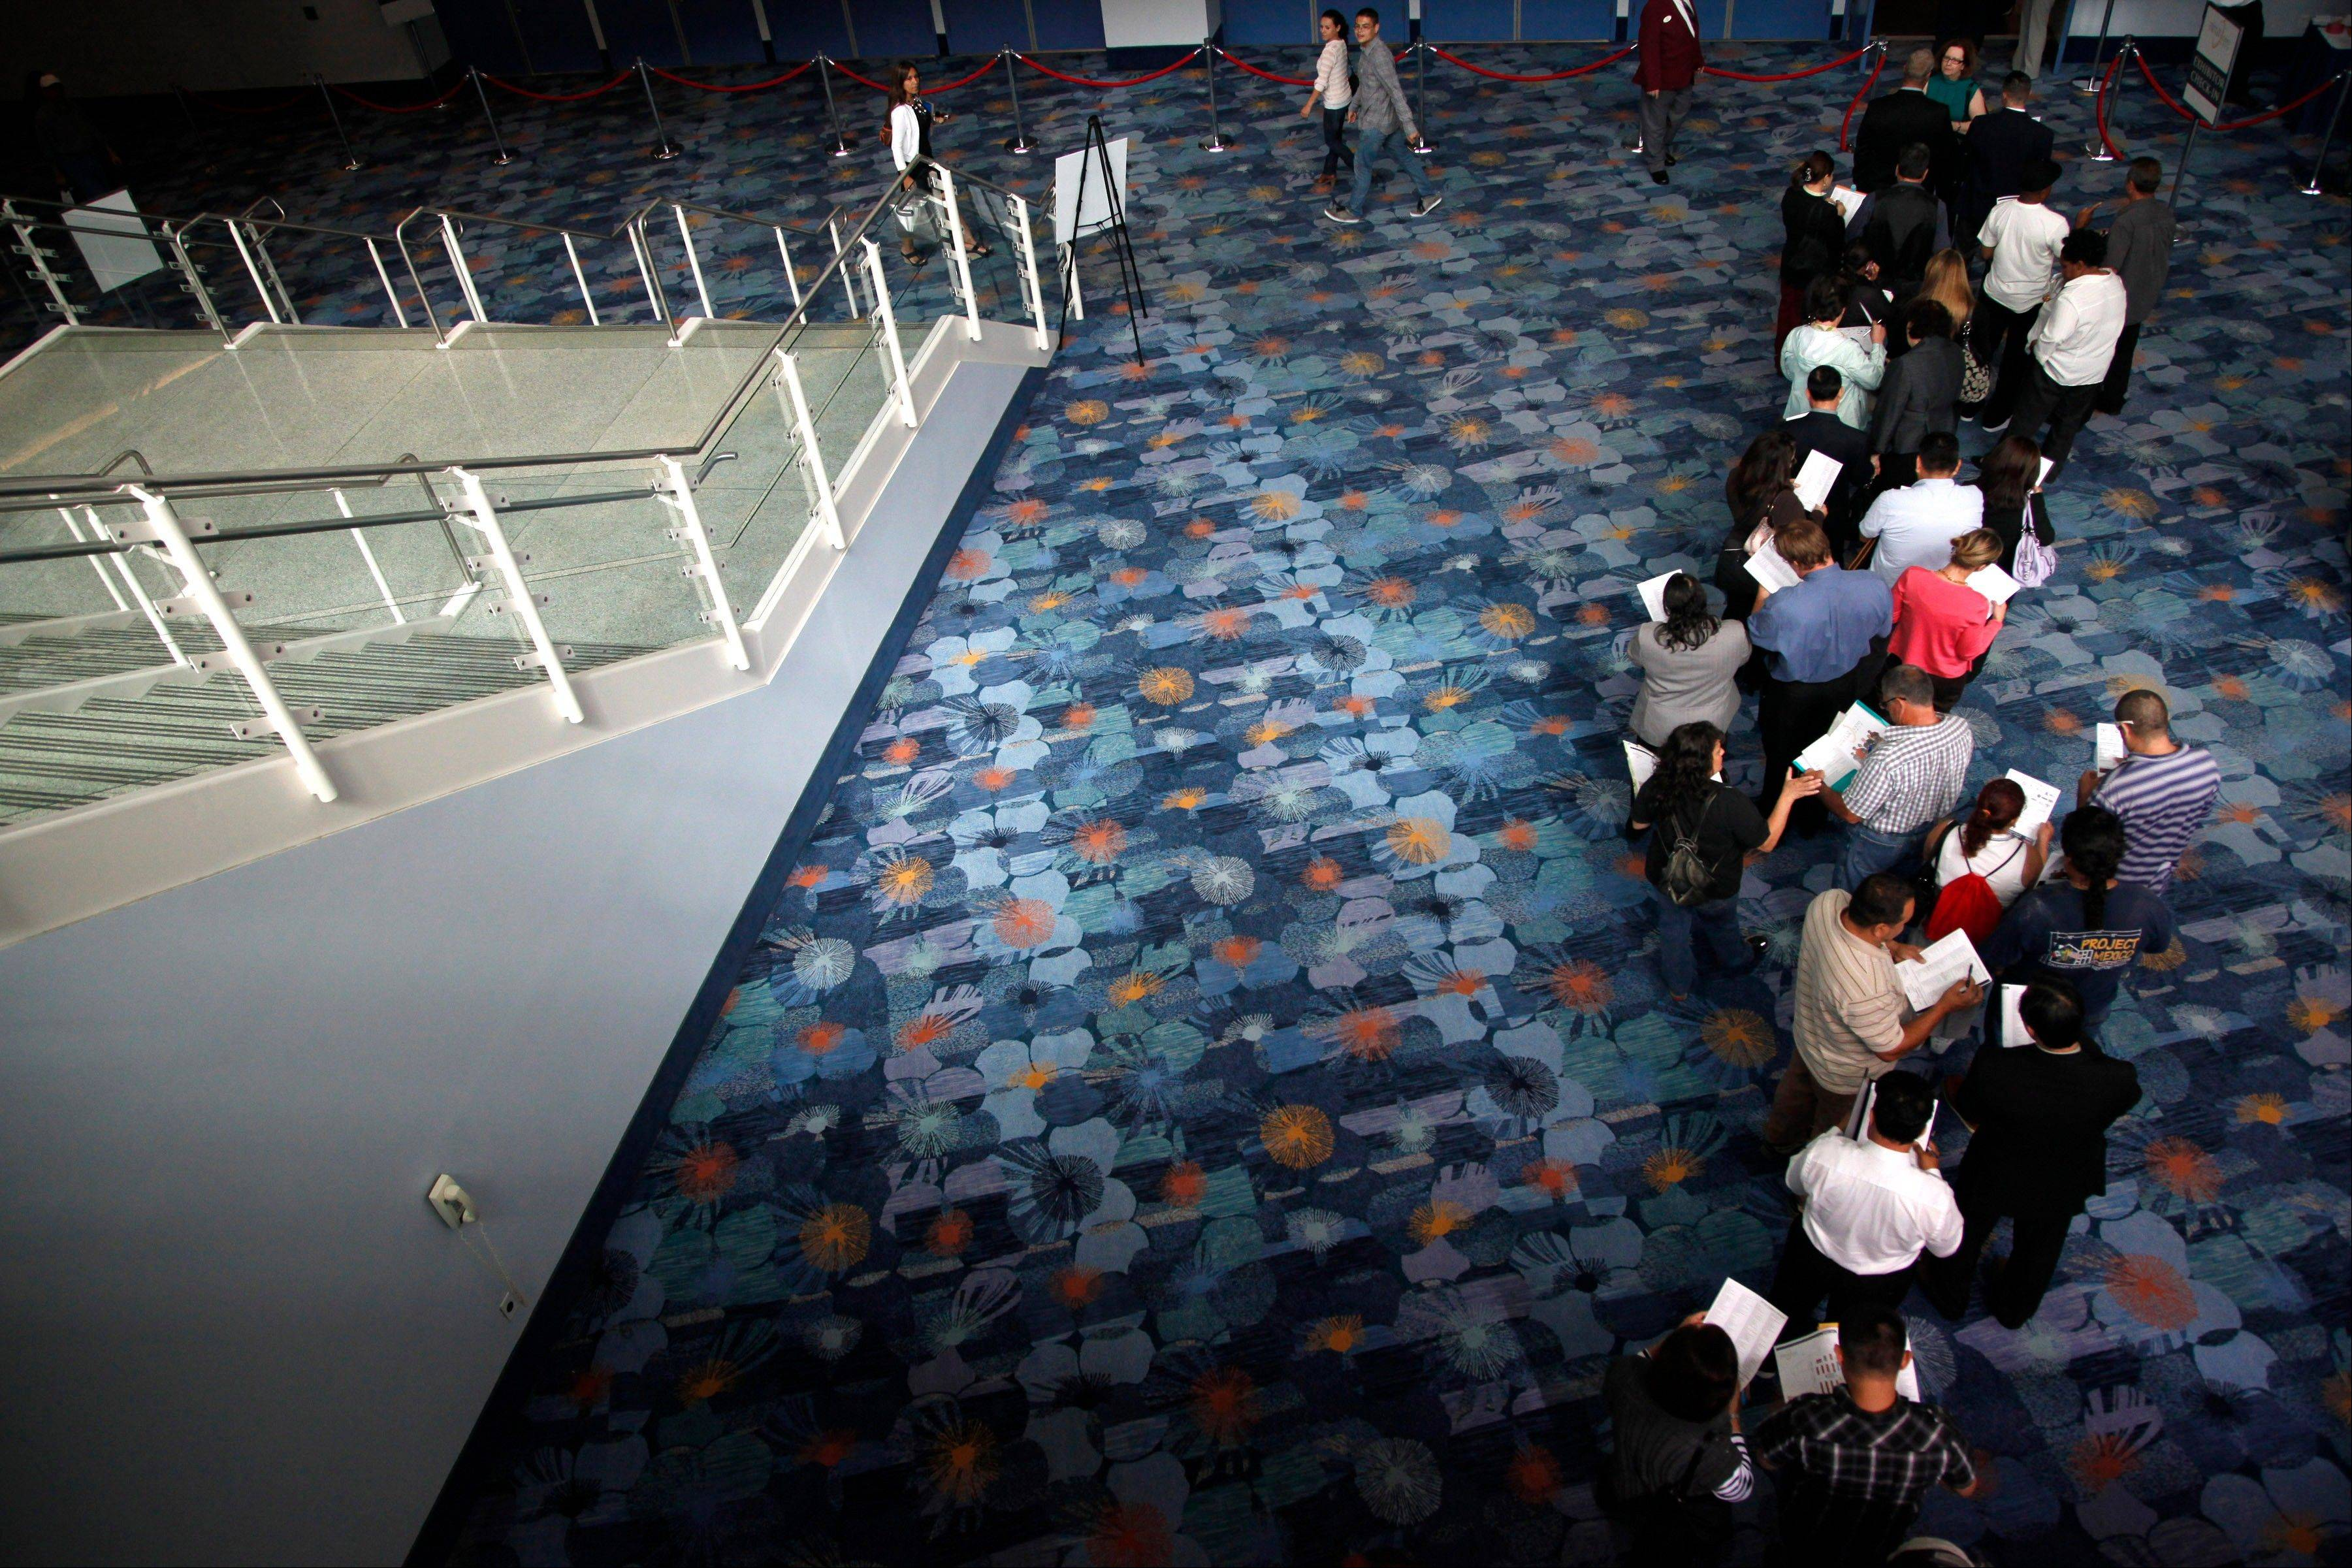 Job seekers wait in line at a job fair expo in Anaheim, Calif. U.S. employers posted the most job openings in four years in June, a positive sign that hiring may pick up. The increase comes after employers added the most jobs in five months in July.